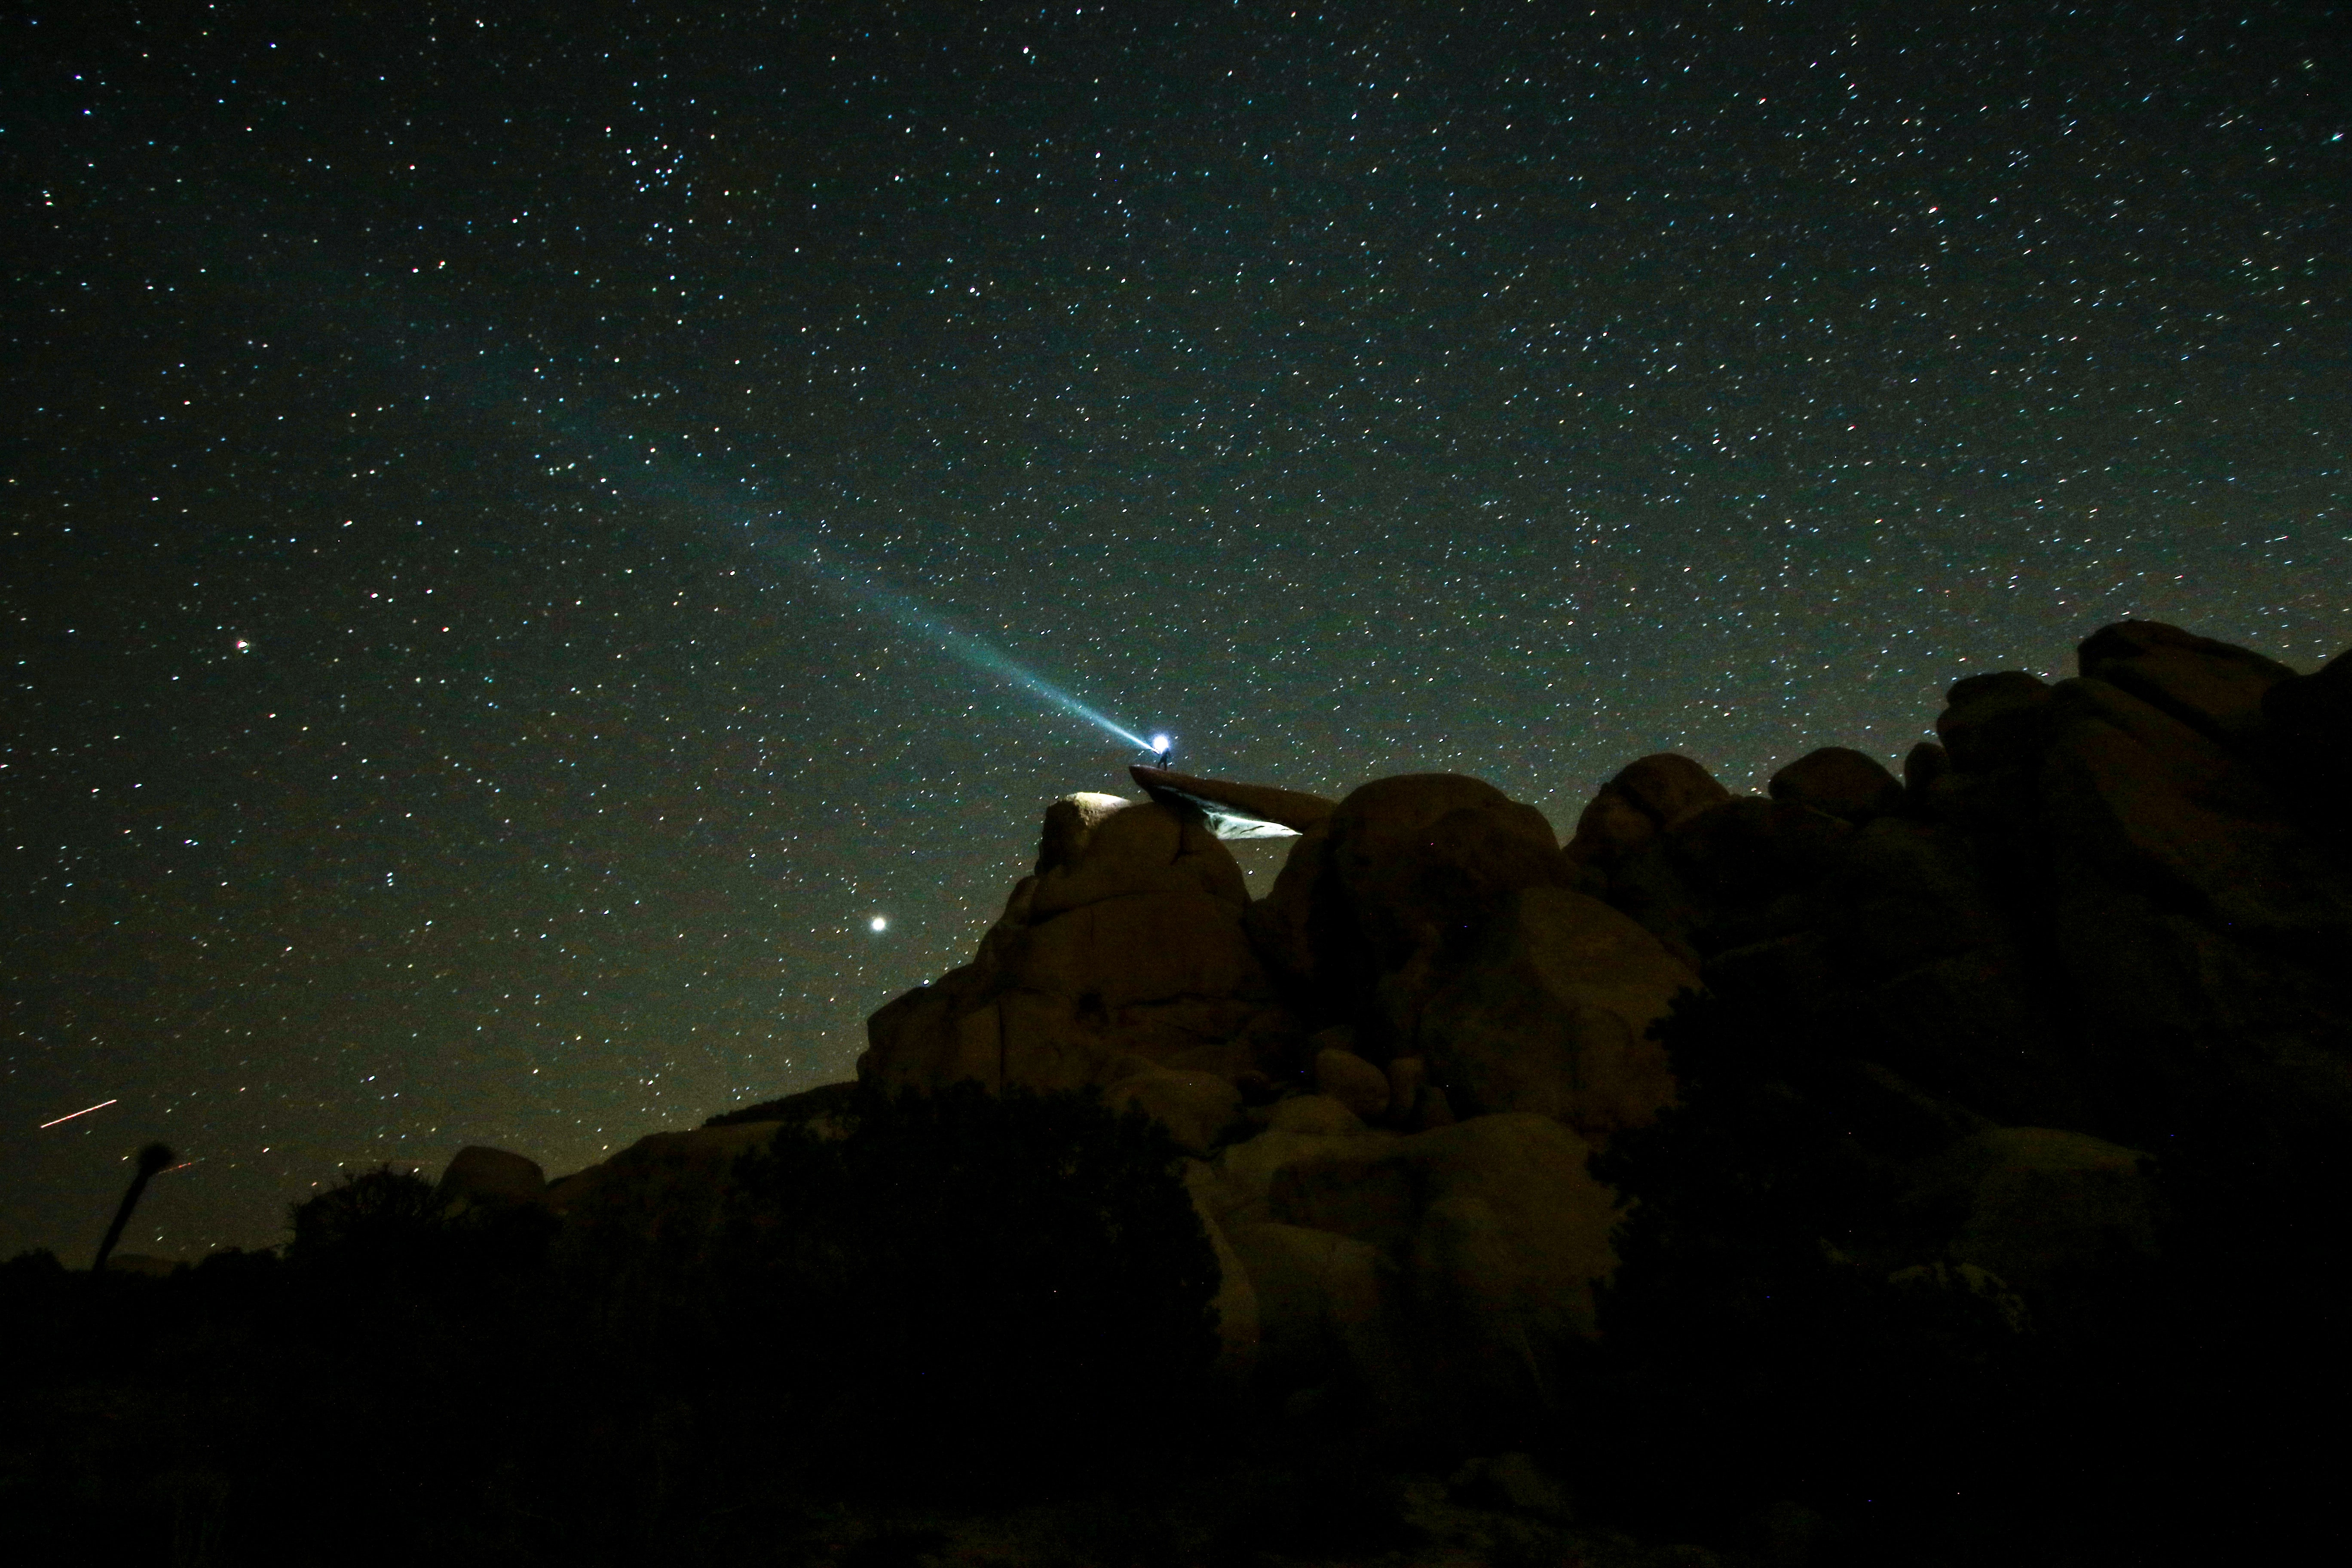 rock formations under starry night